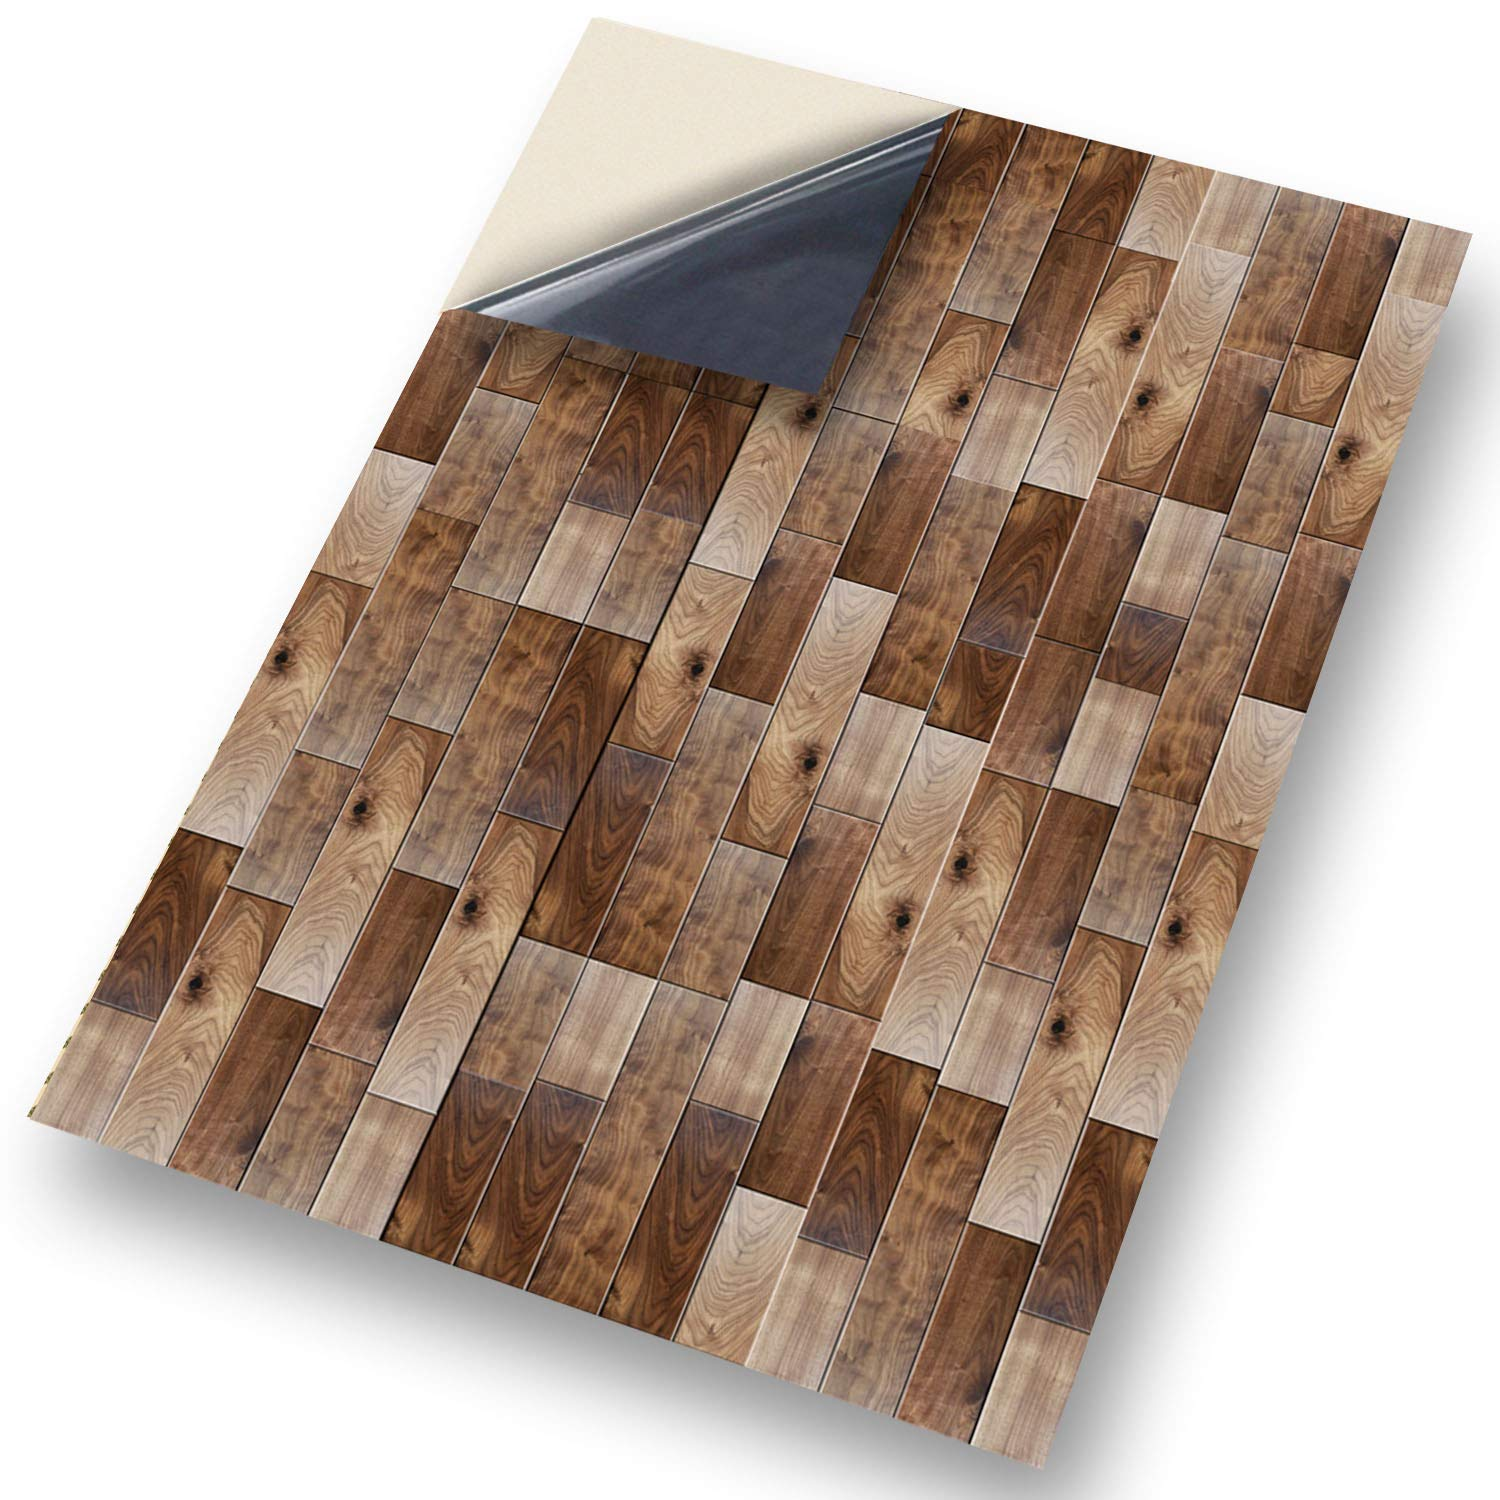 """No 55 Wooden Floor: NEW SELF ADHESIVE Dolls House Wallpaper : 1/12th scale Sheet Size : 12. 1/12"""" wide x 8.3/4"""" high (318mm x 225mm) Superior """"Non see through"""" Semi Matt Vinyl Coverings that can be applied instantly over existing pa"""